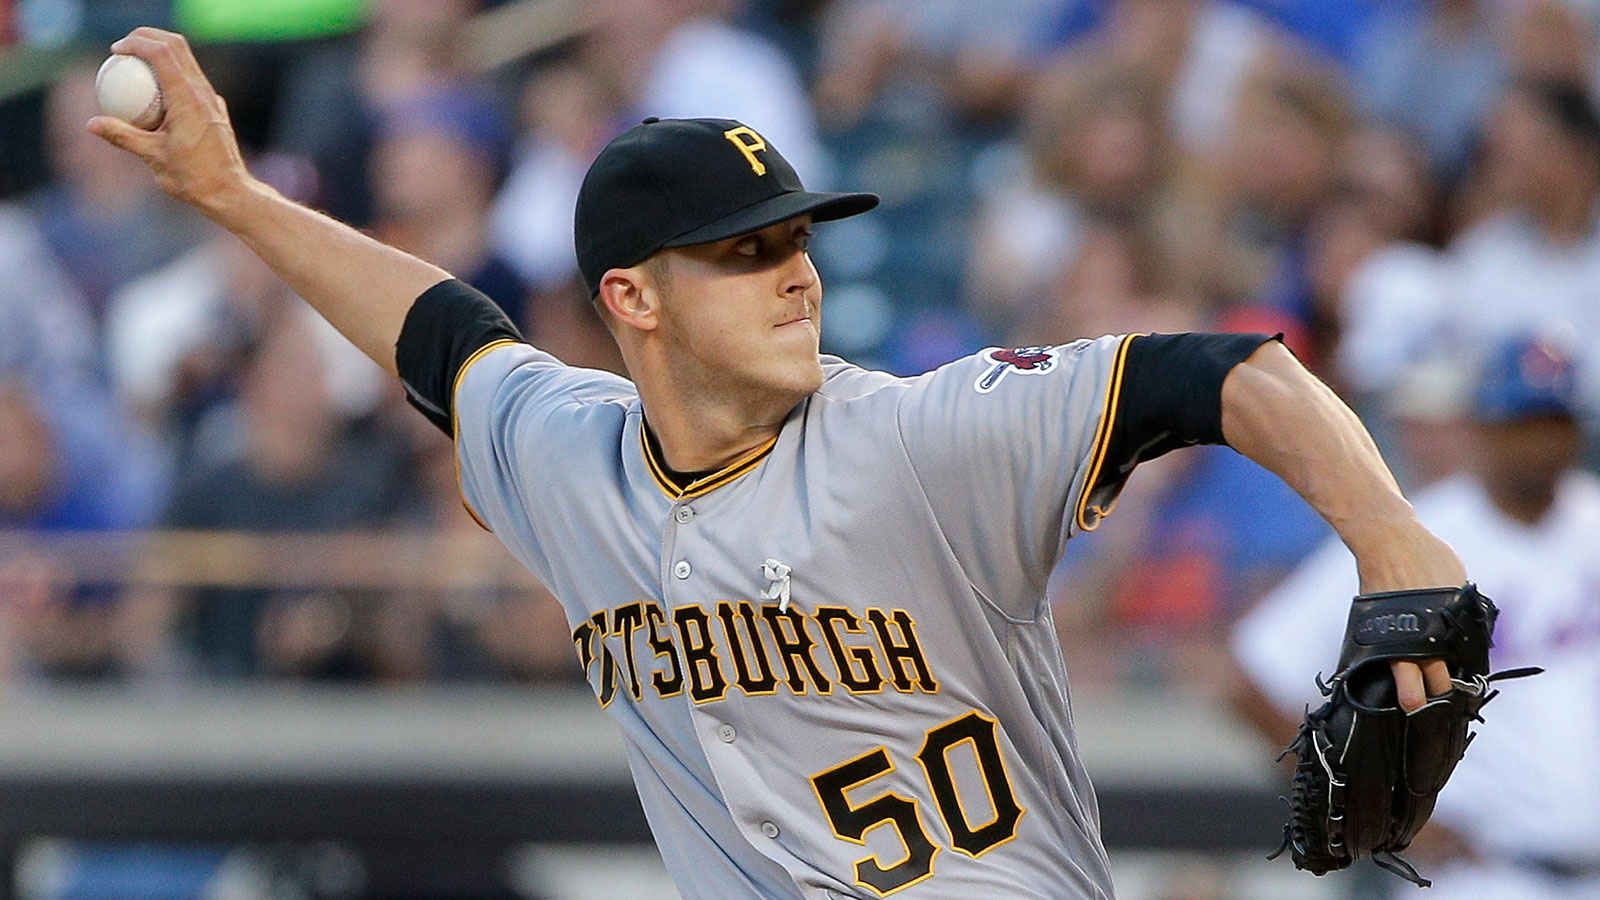 Pirates phenom Jameson Taillon flirts with no-hitter in second start